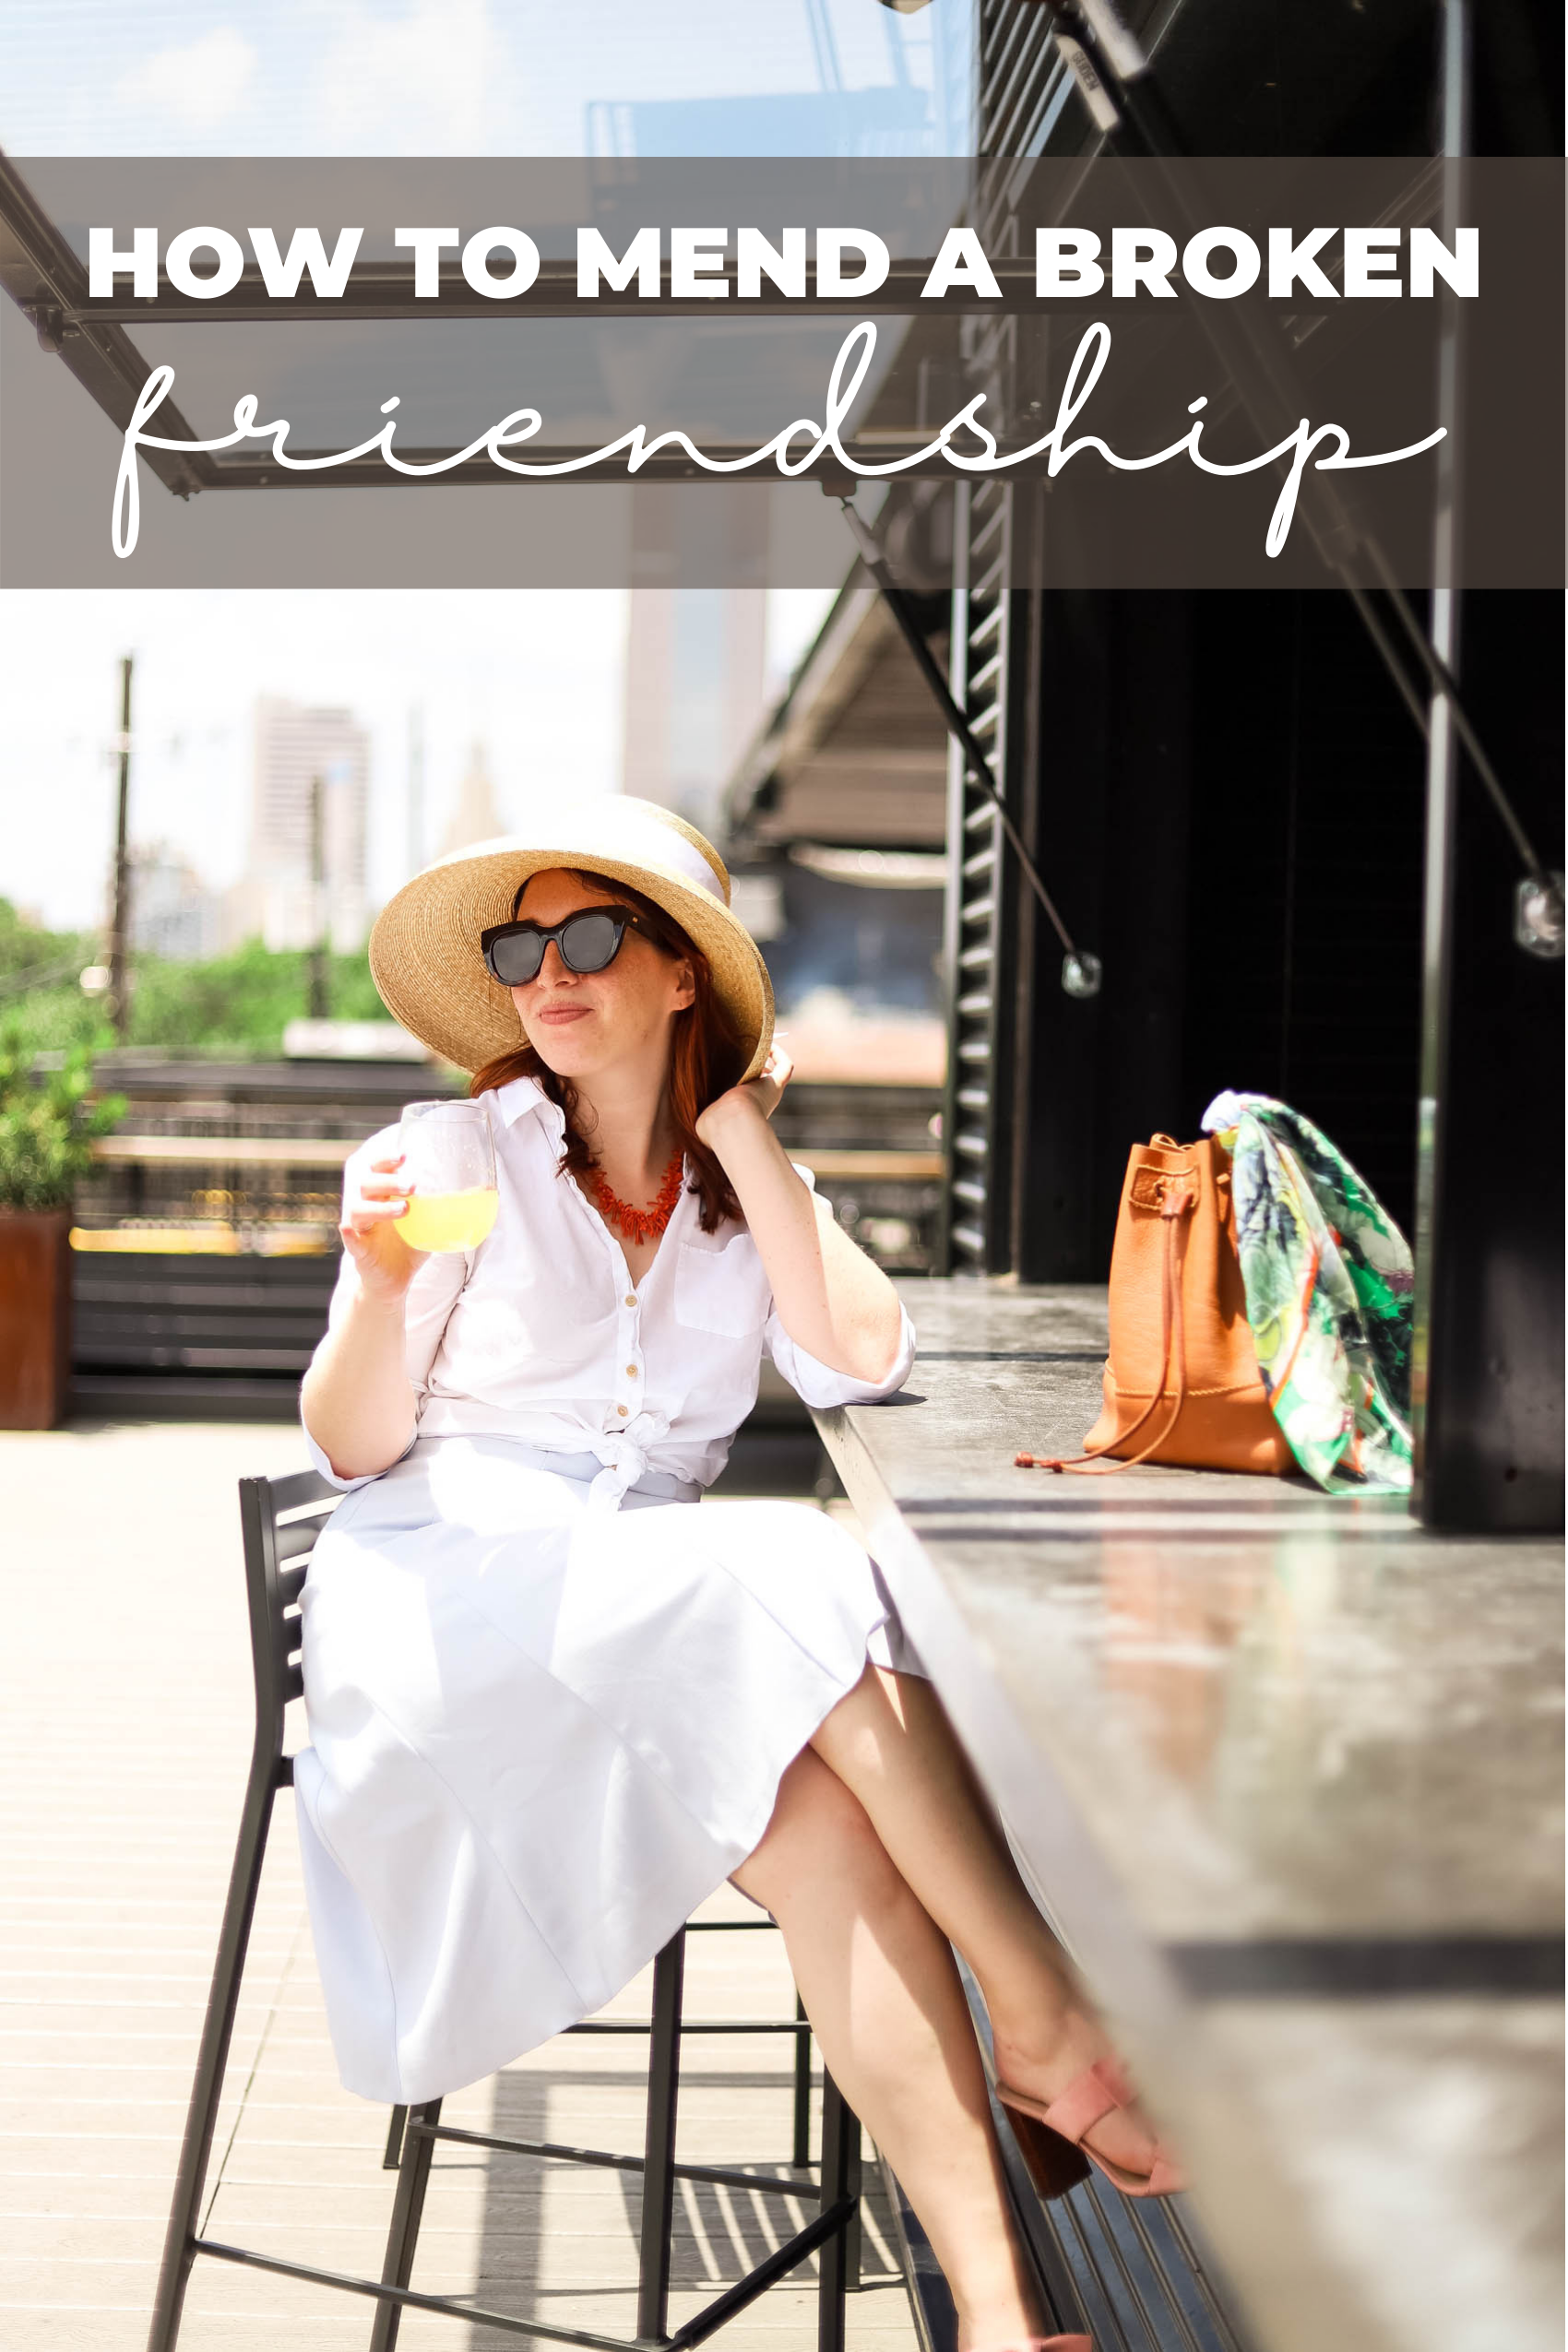 How to mend a broken friendship Pinterest graphic